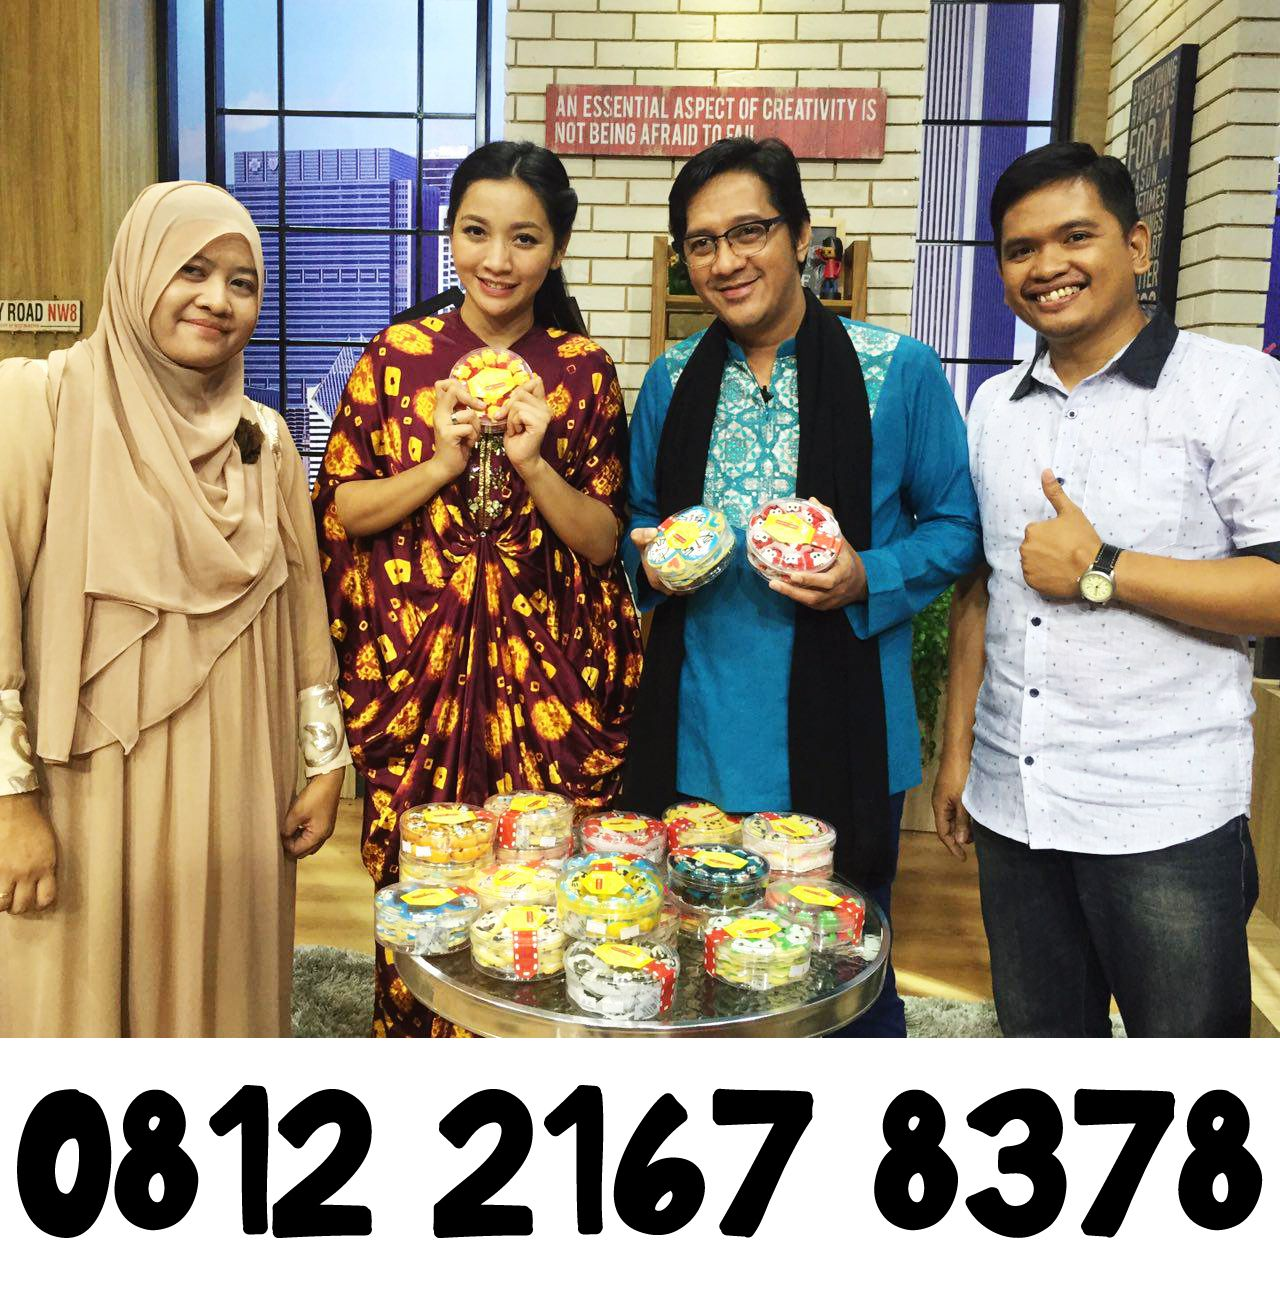 17 Best Images About Peluang Bisnis Kue Anak Lucu 0812 2167 8378